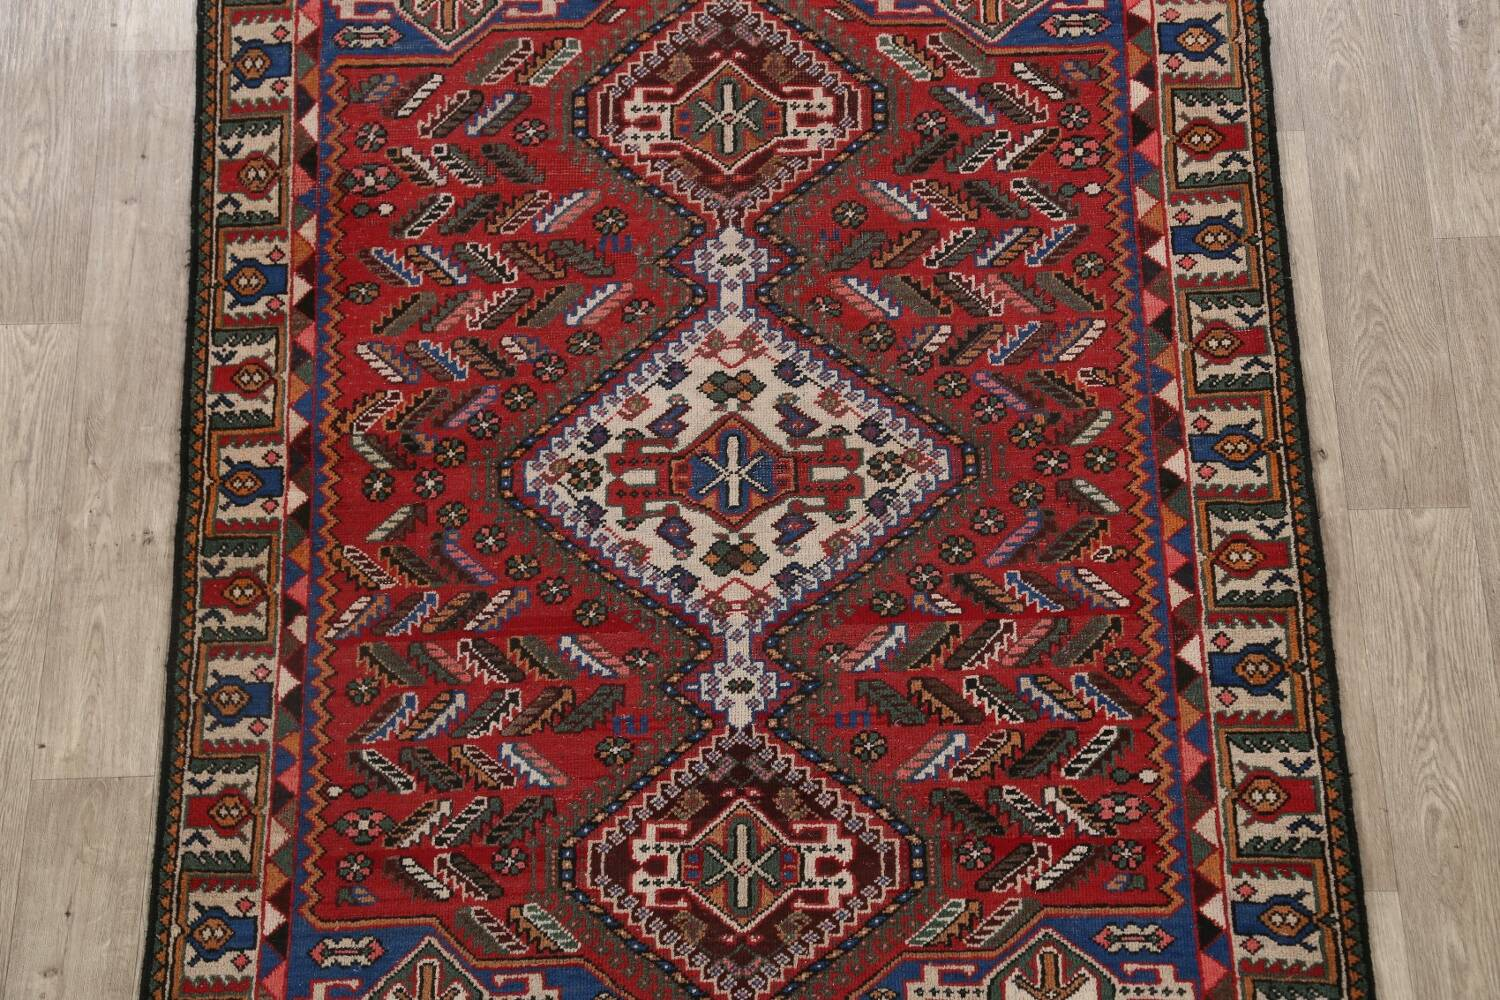 Antique Tribal Bakhtiari Persian Area Rug 5x6 image 3